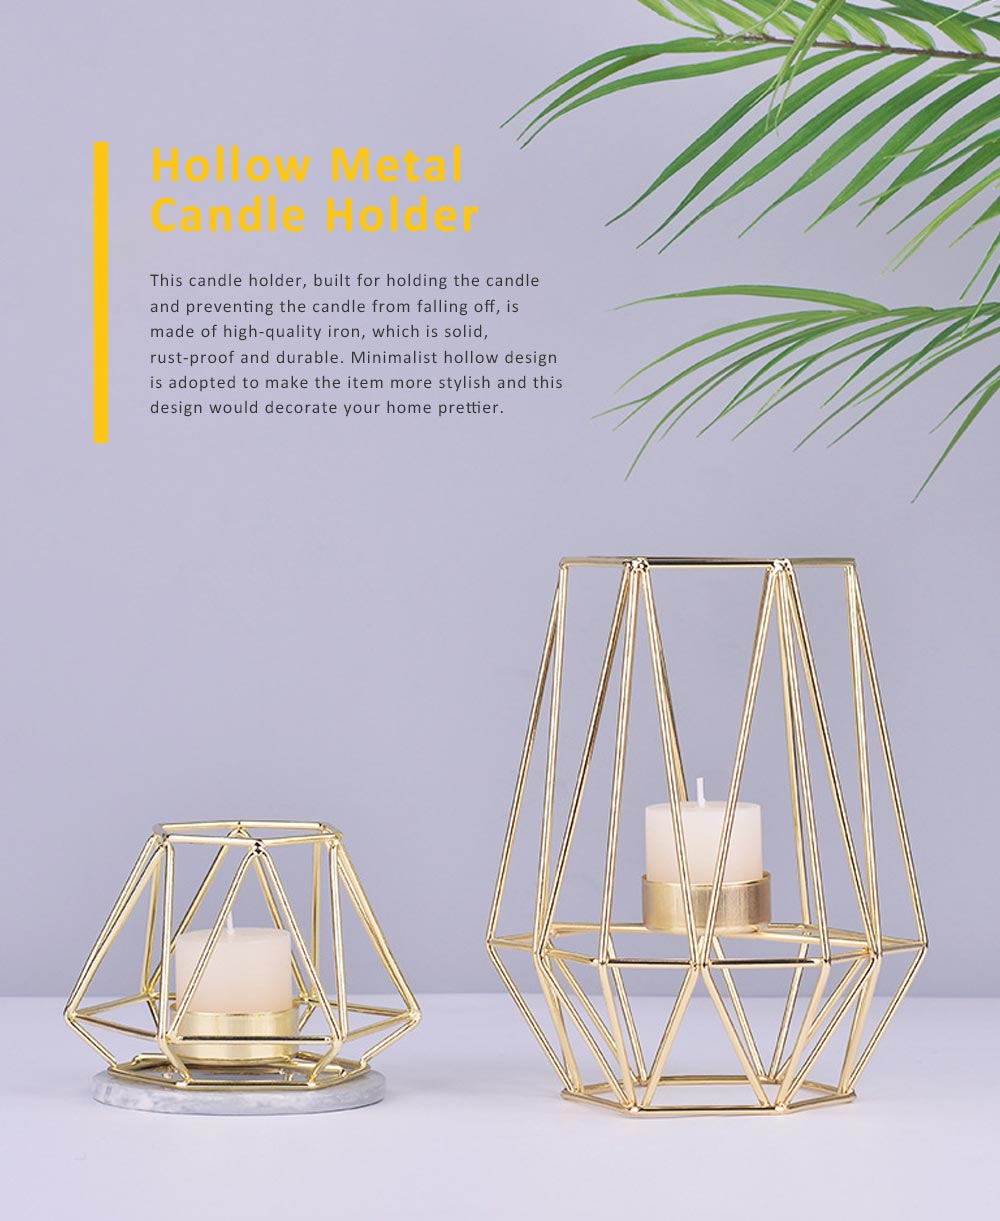 Elegant Golden Hollow Solid Metal Candle Holder, Minimalist Romantic Pink Golden Candler Table Accessories Decoration 0